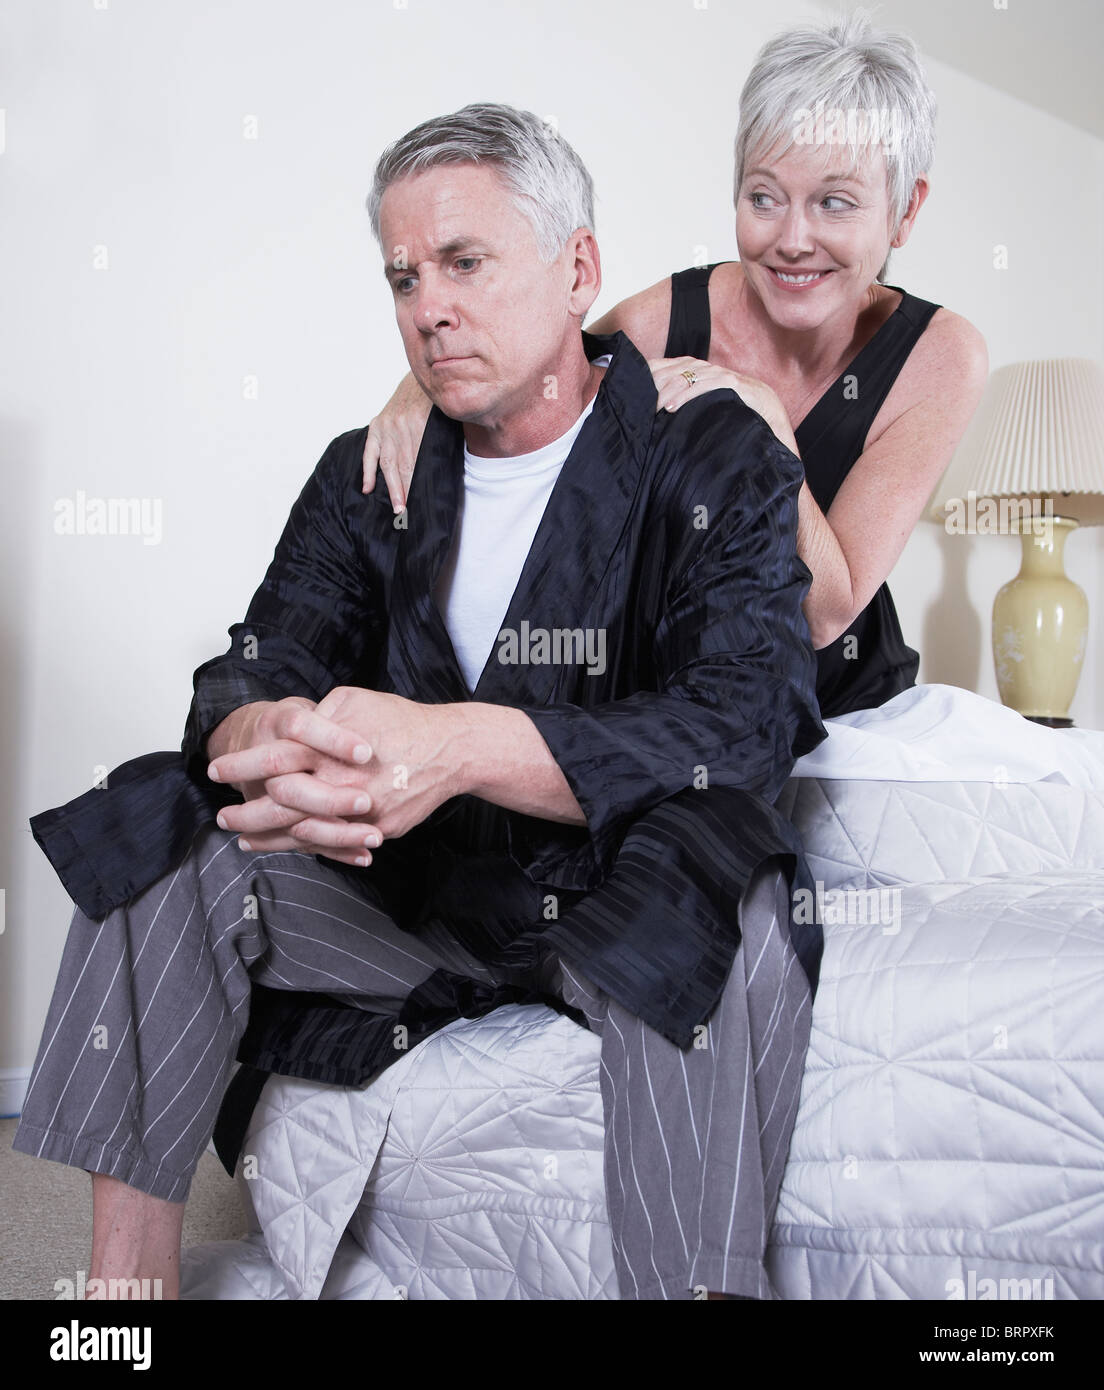 Mature woman consoling man sitting on bed - Stock Image